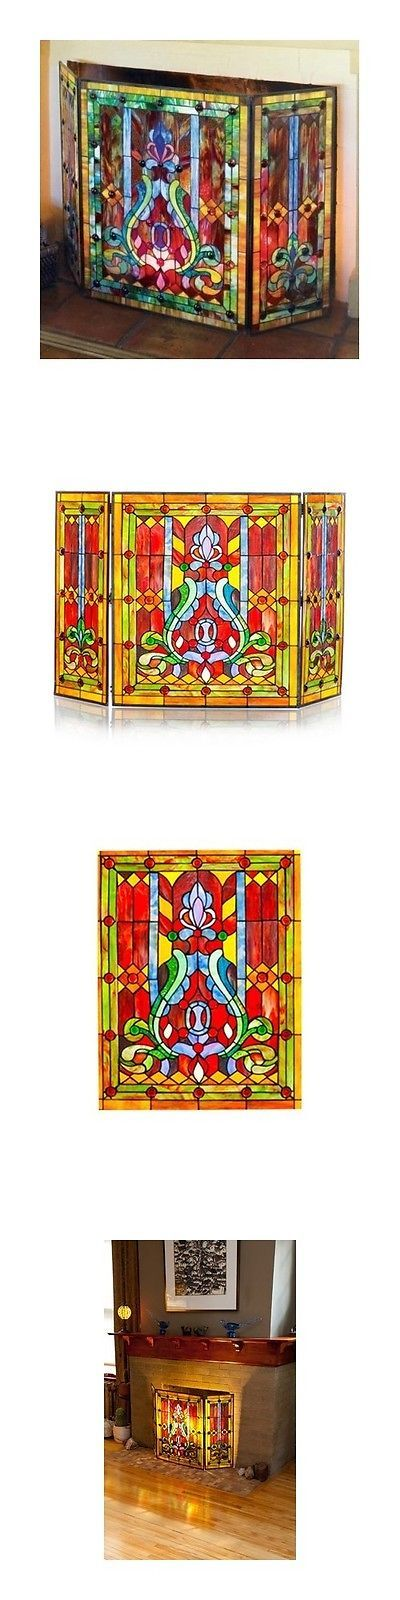 Fireplace Screens and Doors 38221: Fireplace Screen Stained Glass Folding 3-Panel Door Tools Victorian Style Decor -> BUY IT NOW ONLY: $192.04 on eBay!